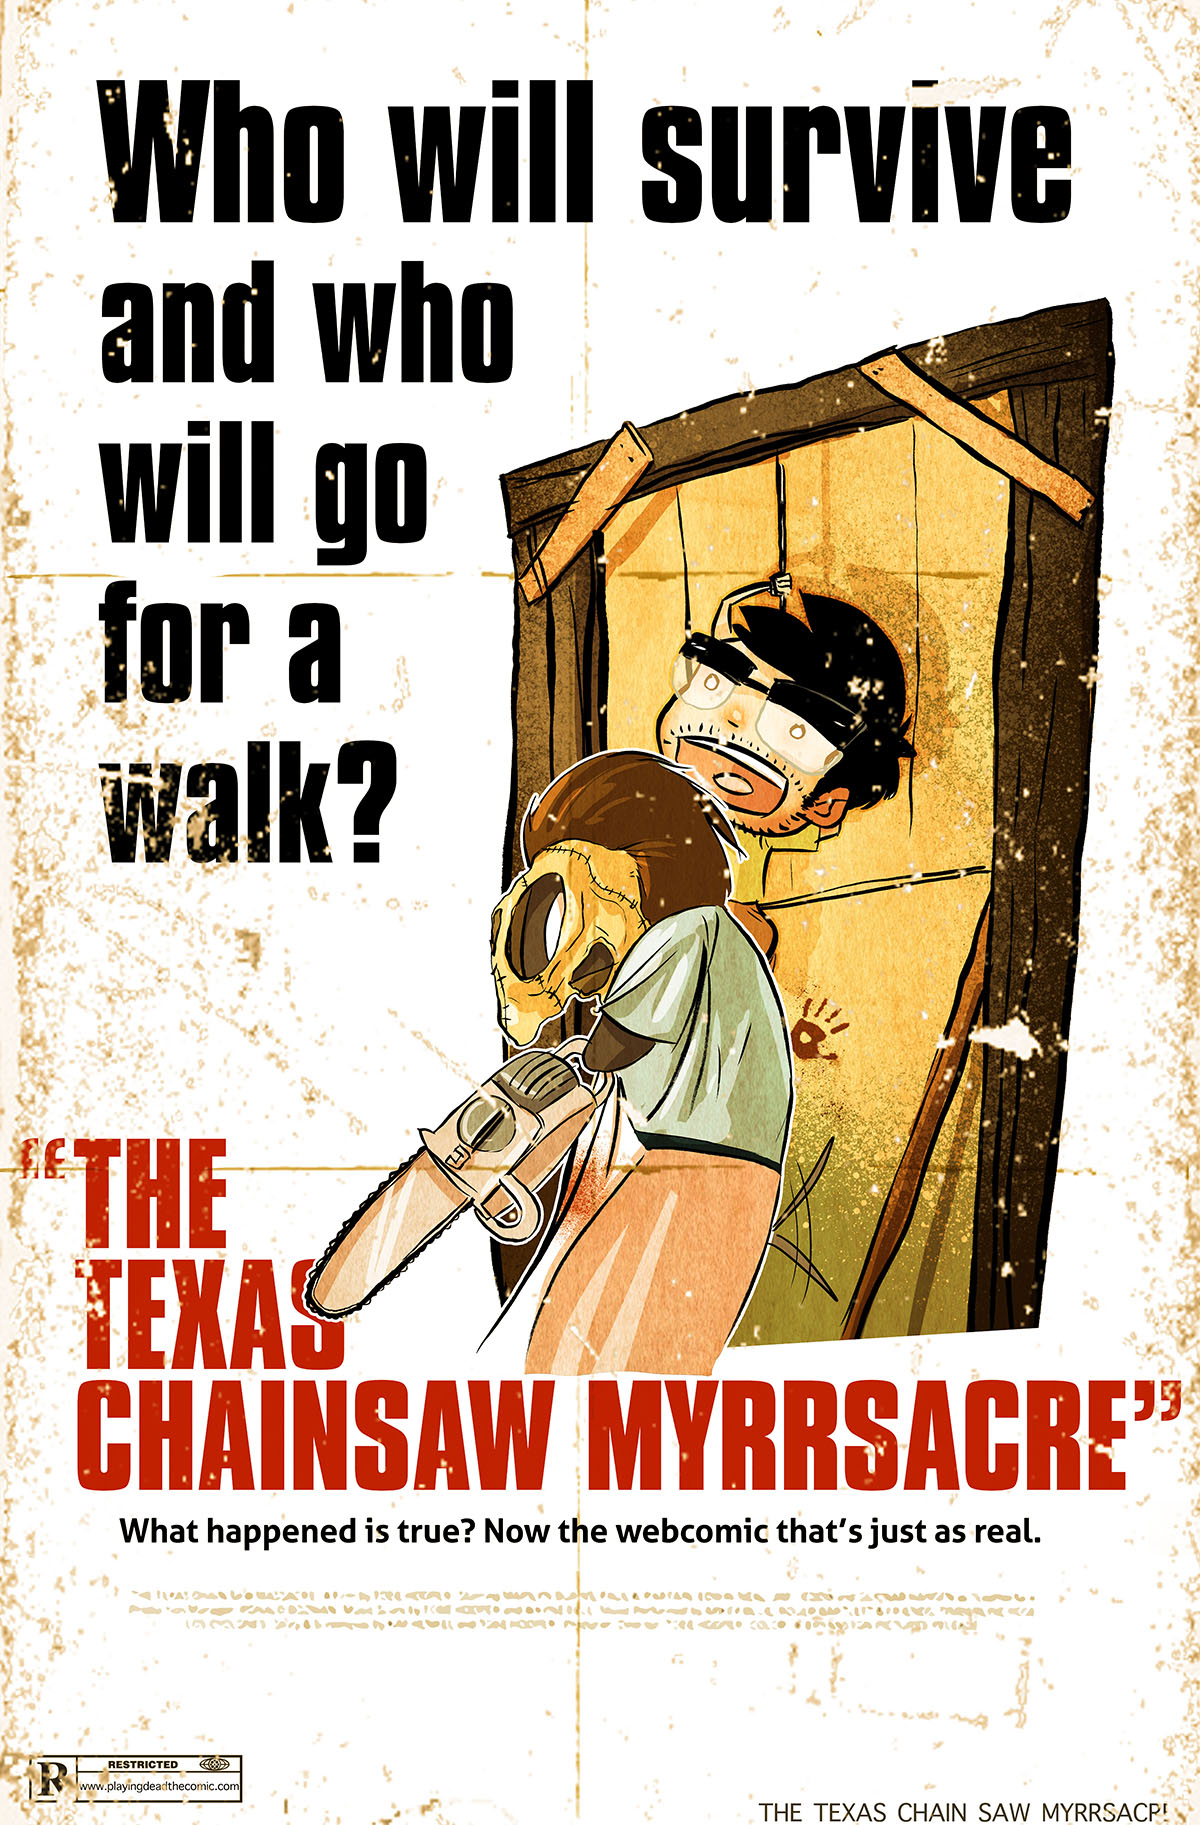 Texas Chainsaw Myrrsacre